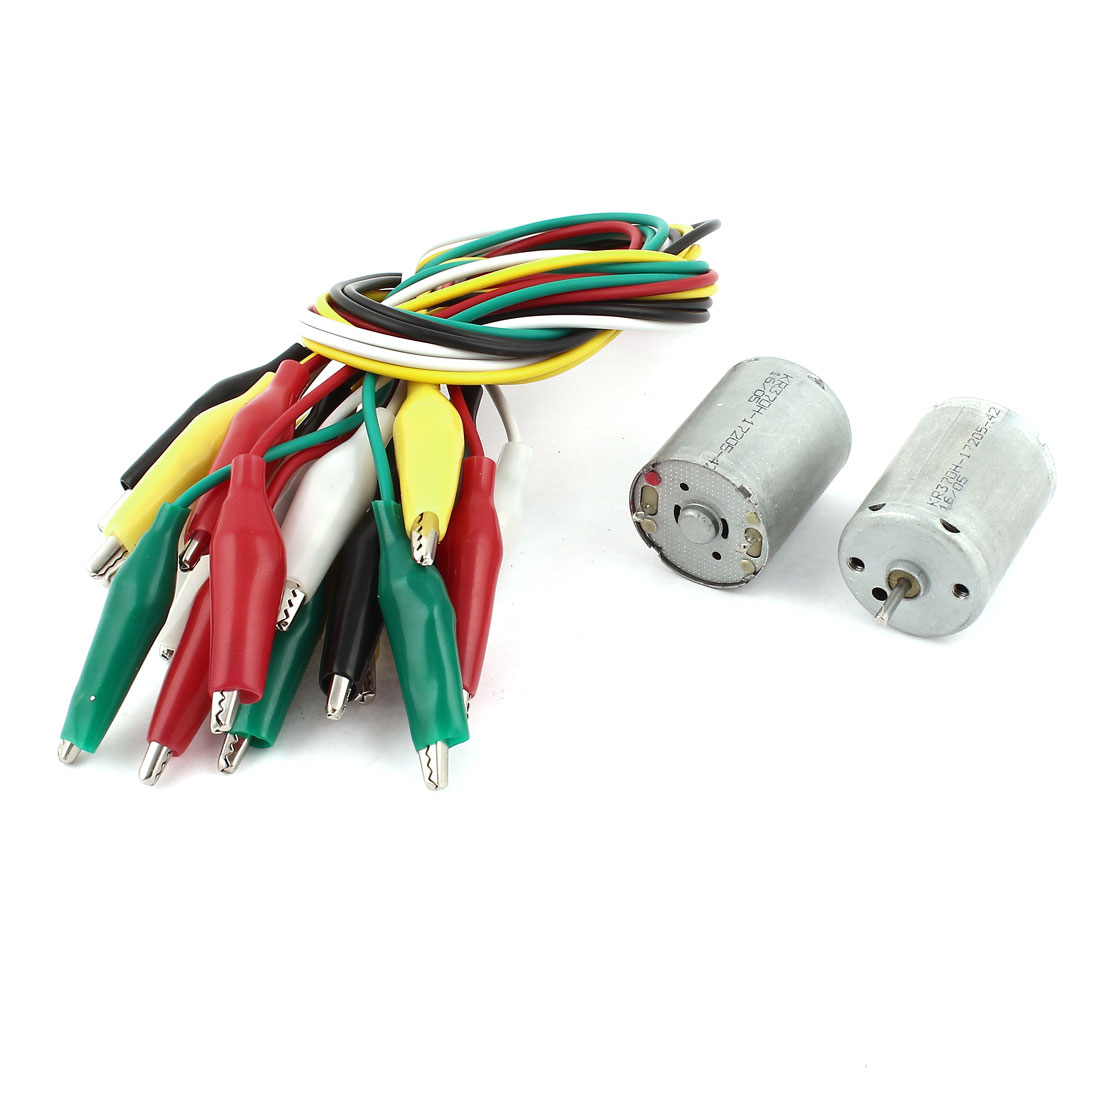 2 Pcs DC 6V 2 Terminals Electric Motor 9000RPM w 10 Pieces Alligator Clip Wires